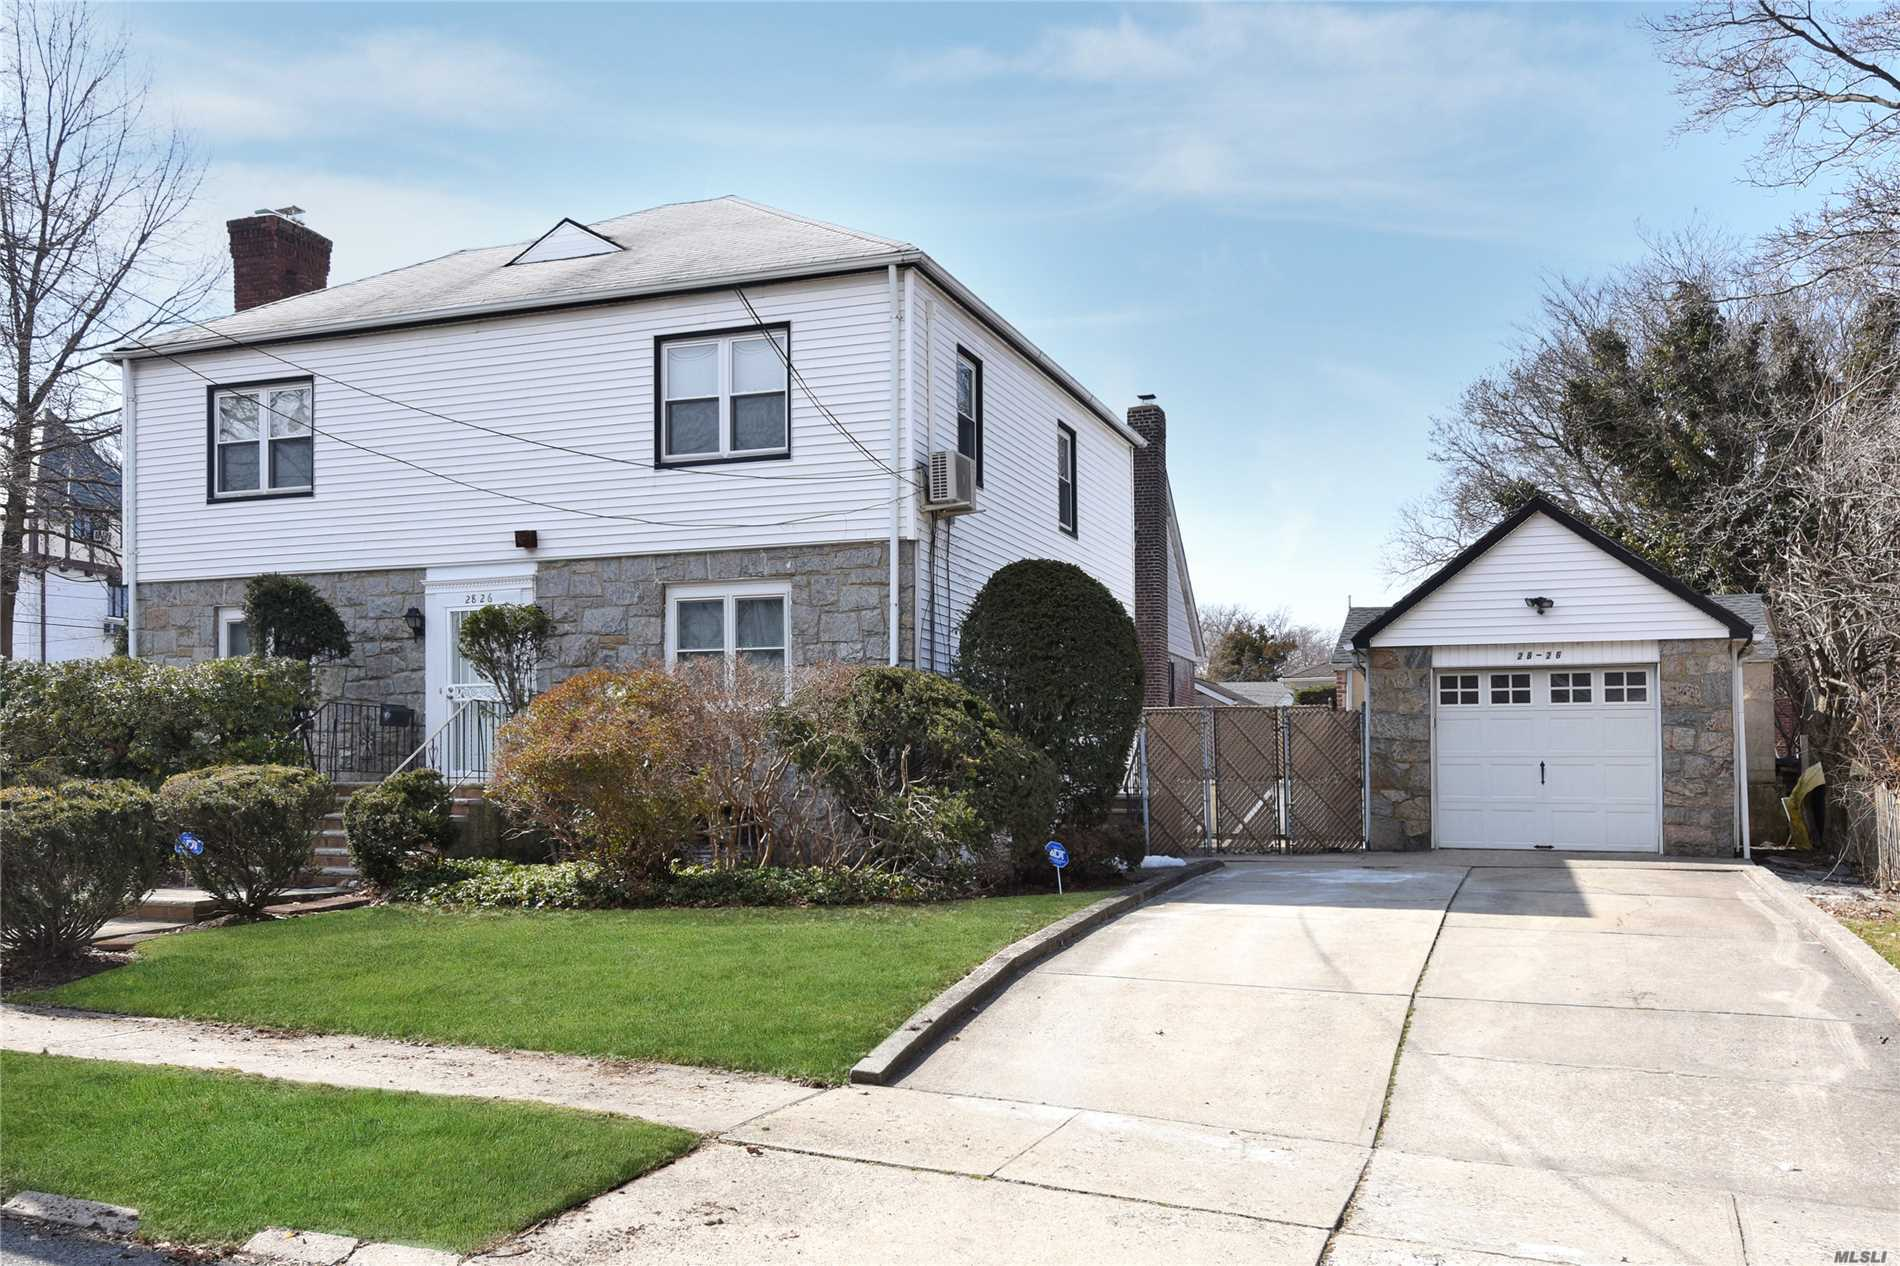 Elegant Center Hall Colonial In The Heart Of North Flushing. 3-4 Beds, 2 Baths, 2 Half Baths. Great For Entertaining, Nice Living Rm & Formal Dining Rm Plus Home Office With Sep/Ent & Den, Large Eat-In Kit , Detached Garage With Wide Driveway, Windowed Basement, Alarm System. Excellent School District: Ps32, Is25 & Francis Lewis High School. Short Walk To Bowne Park, Shops & Lirr. 30 Minute Commute From Nyc.